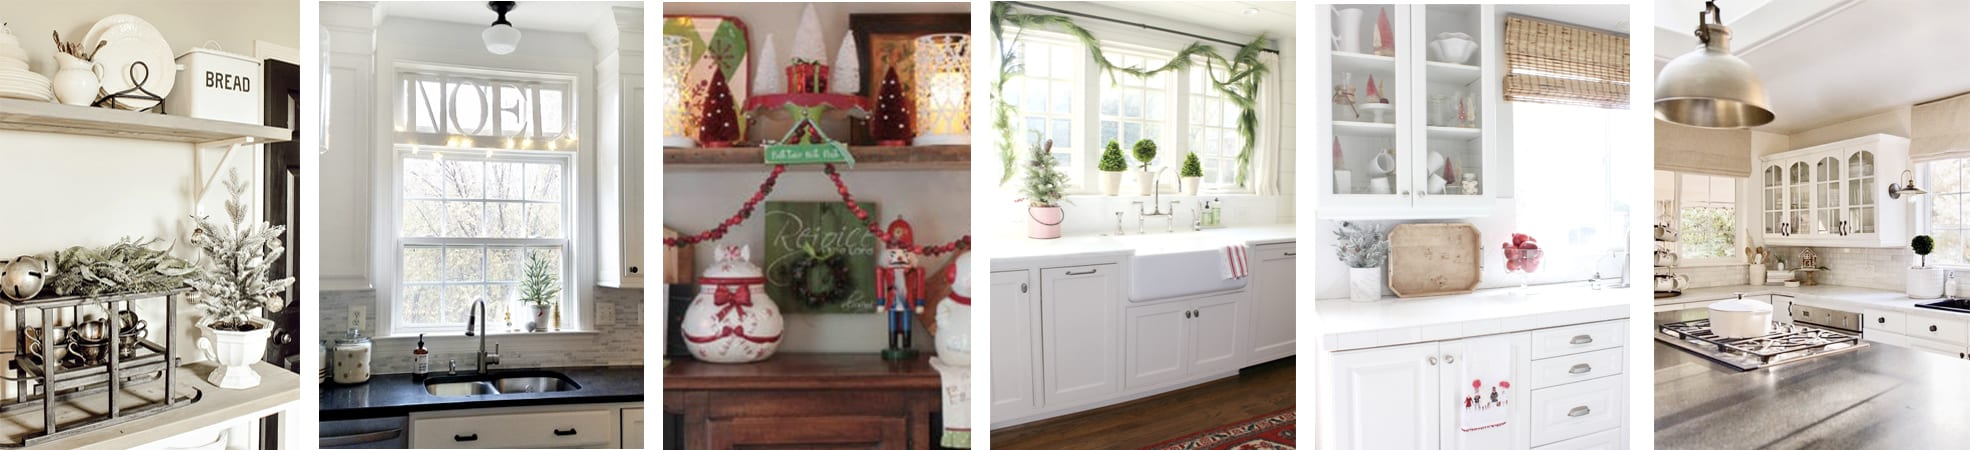 Tuesday christmas kitchen collage 2